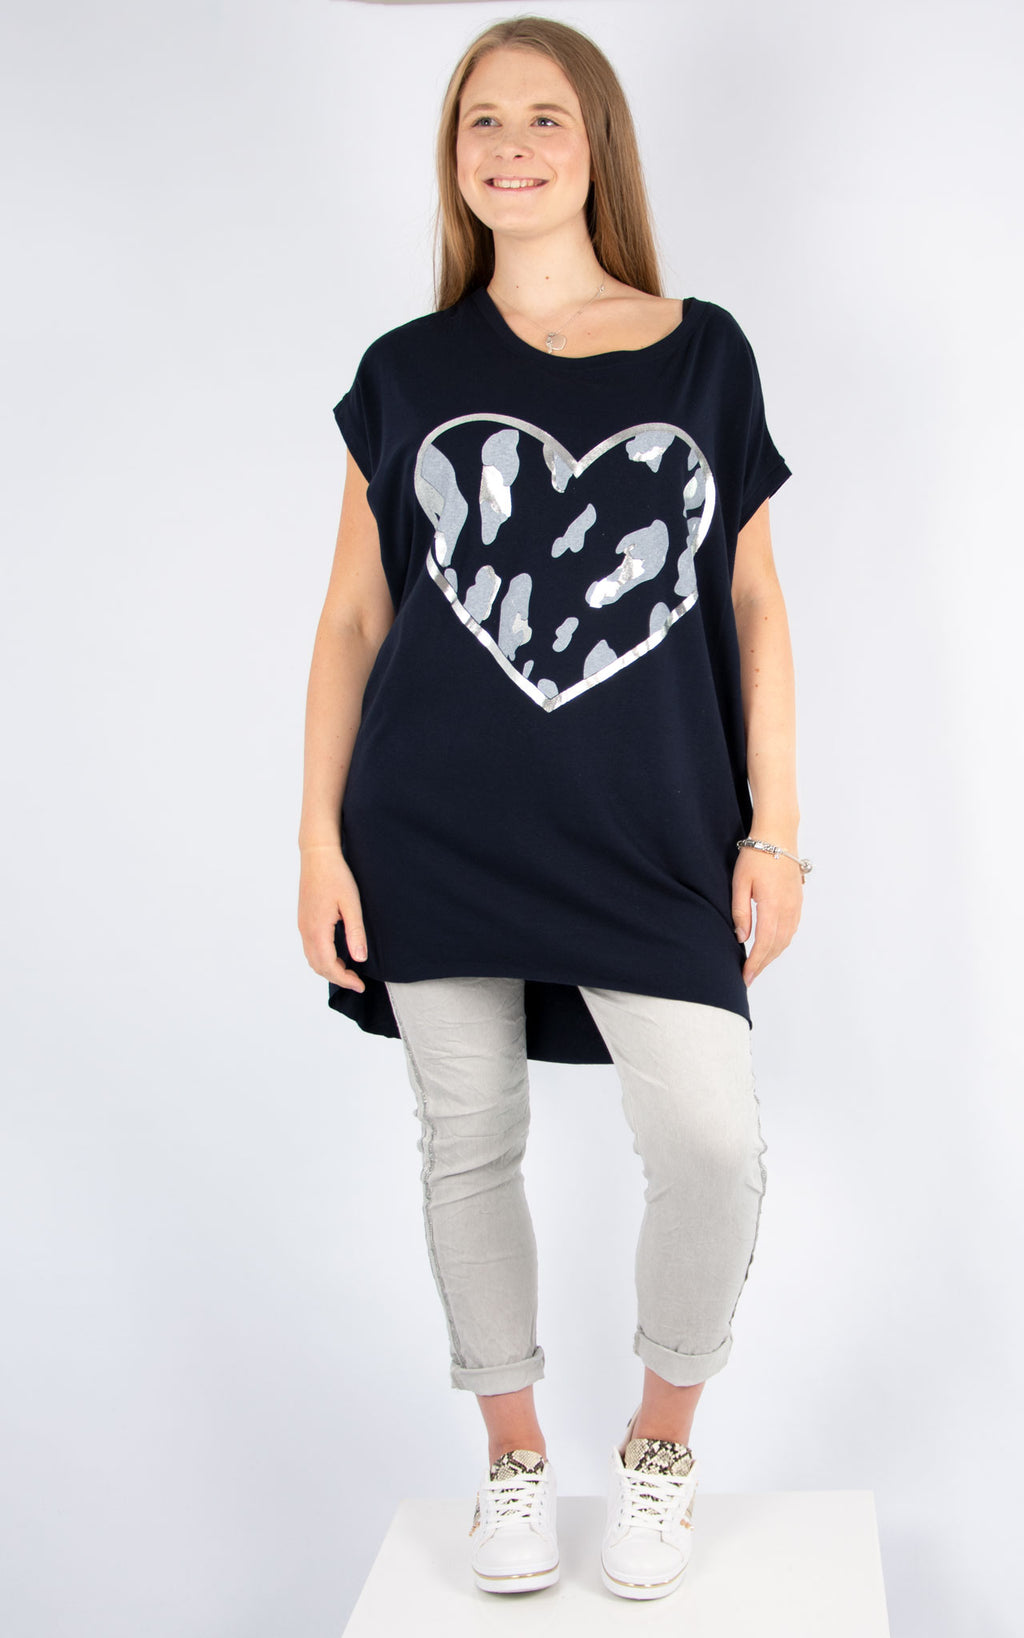 Navy Camo Heart Top | Made in Italy